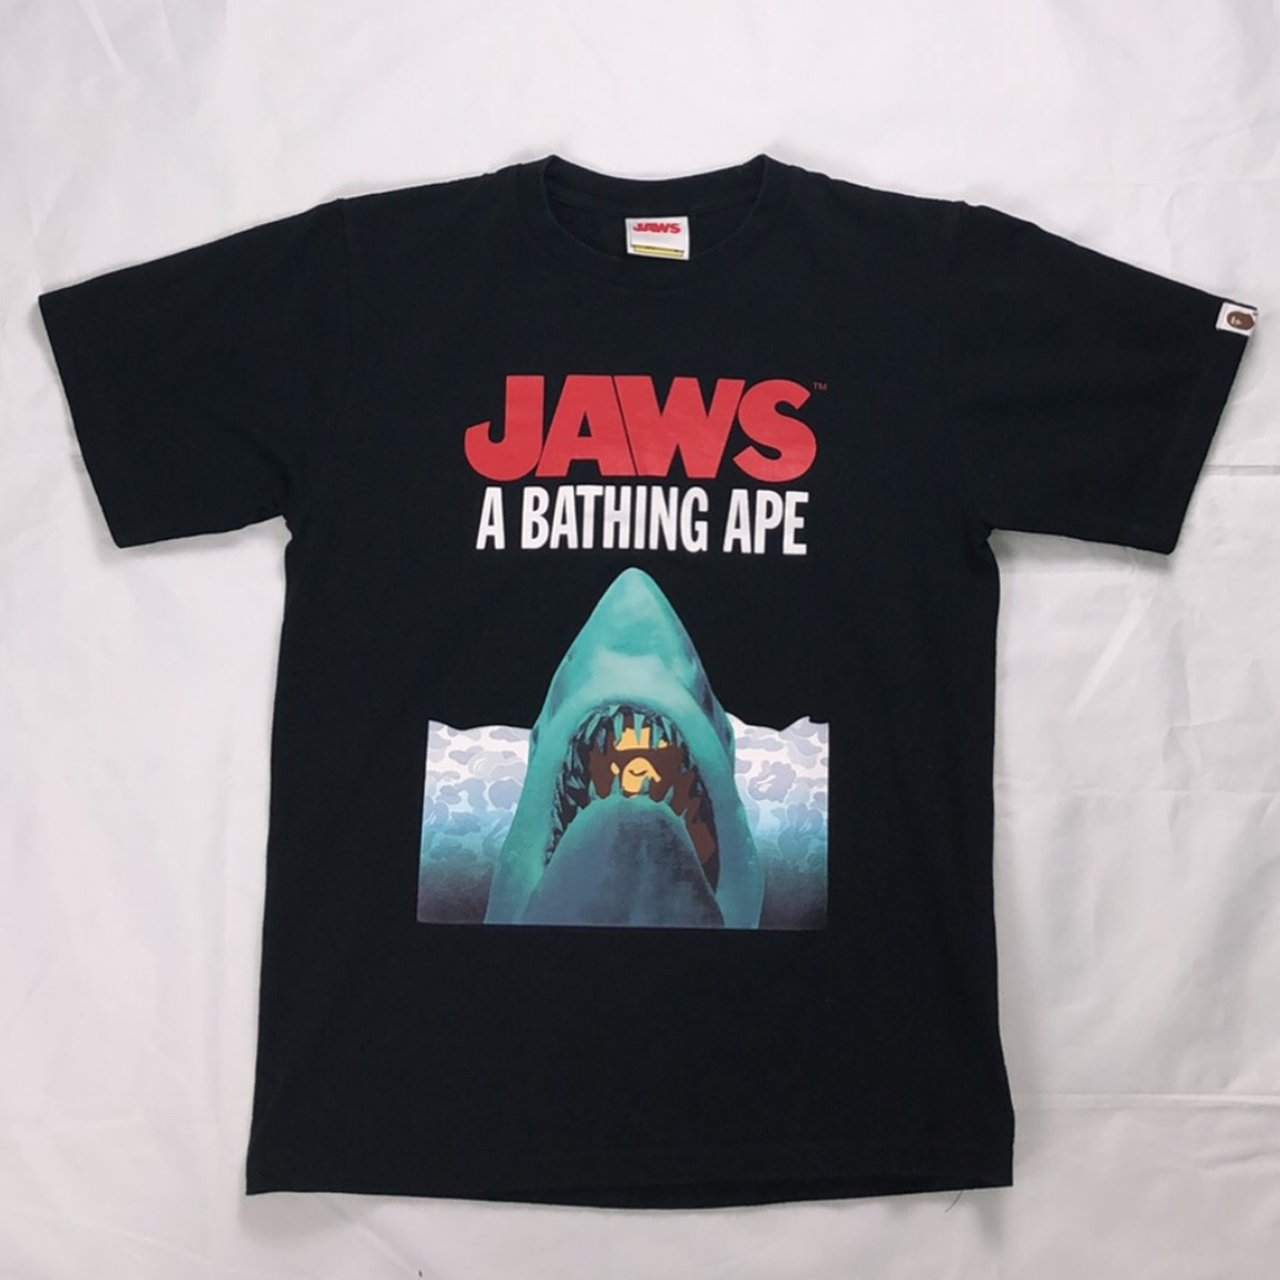 fea13371 Bape x jaws collab tee In very good condition Size small - Depop